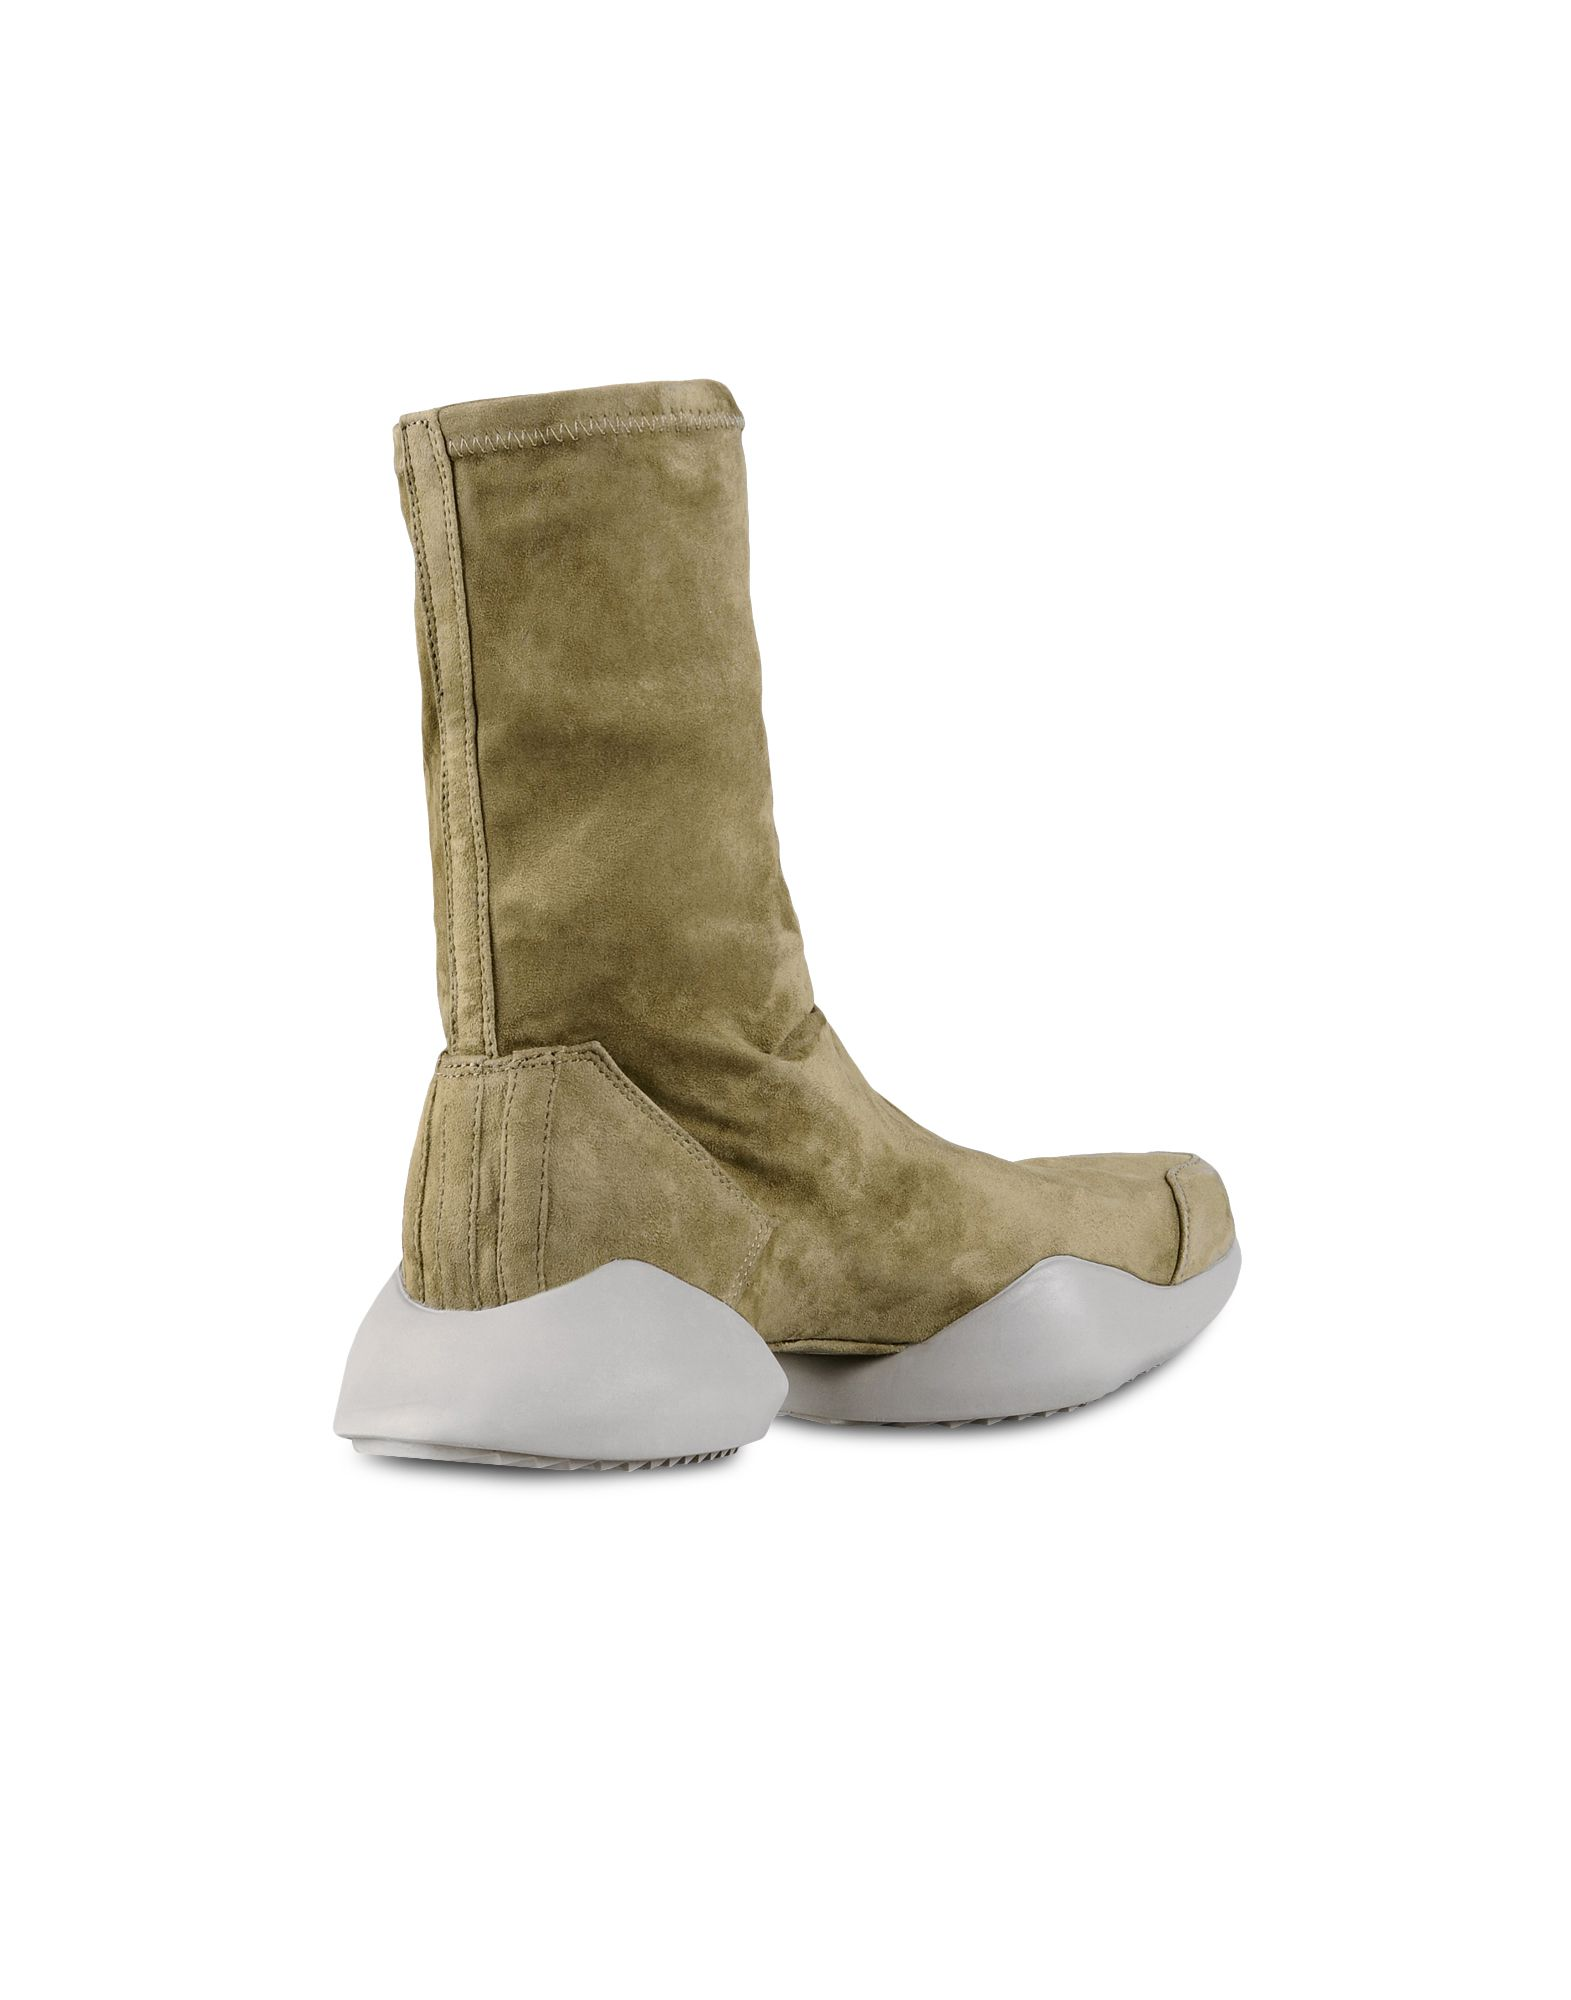 boots adidas x rick owens ankle boot for women online official store. Black Bedroom Furniture Sets. Home Design Ideas